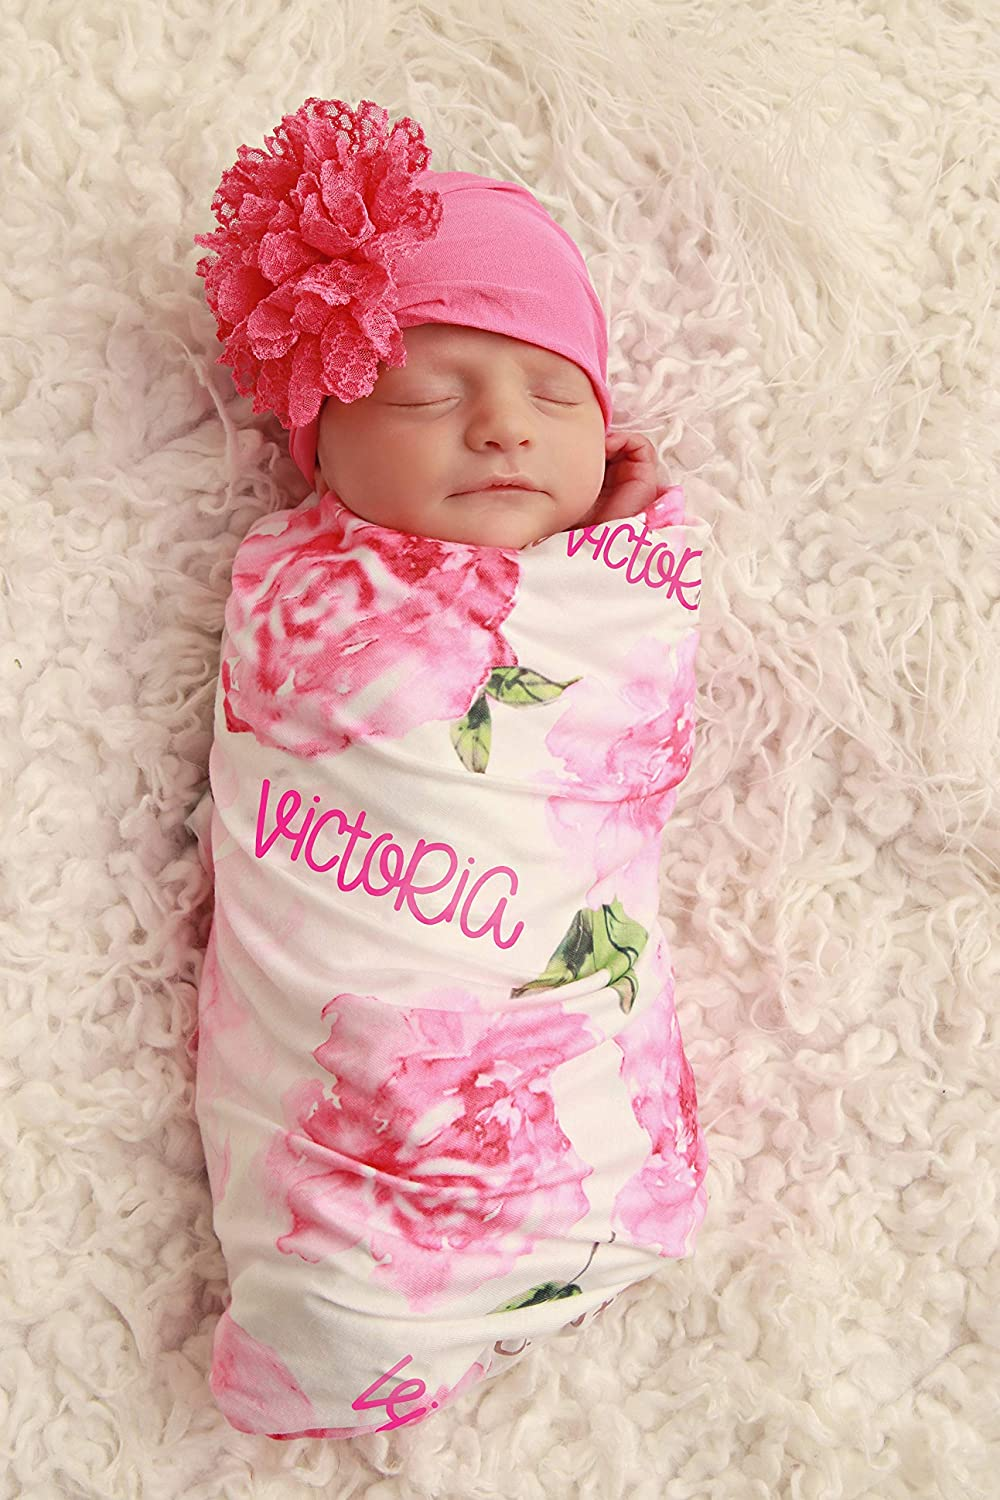 Personalized infant girl baby gown /& headband set custom monogram name